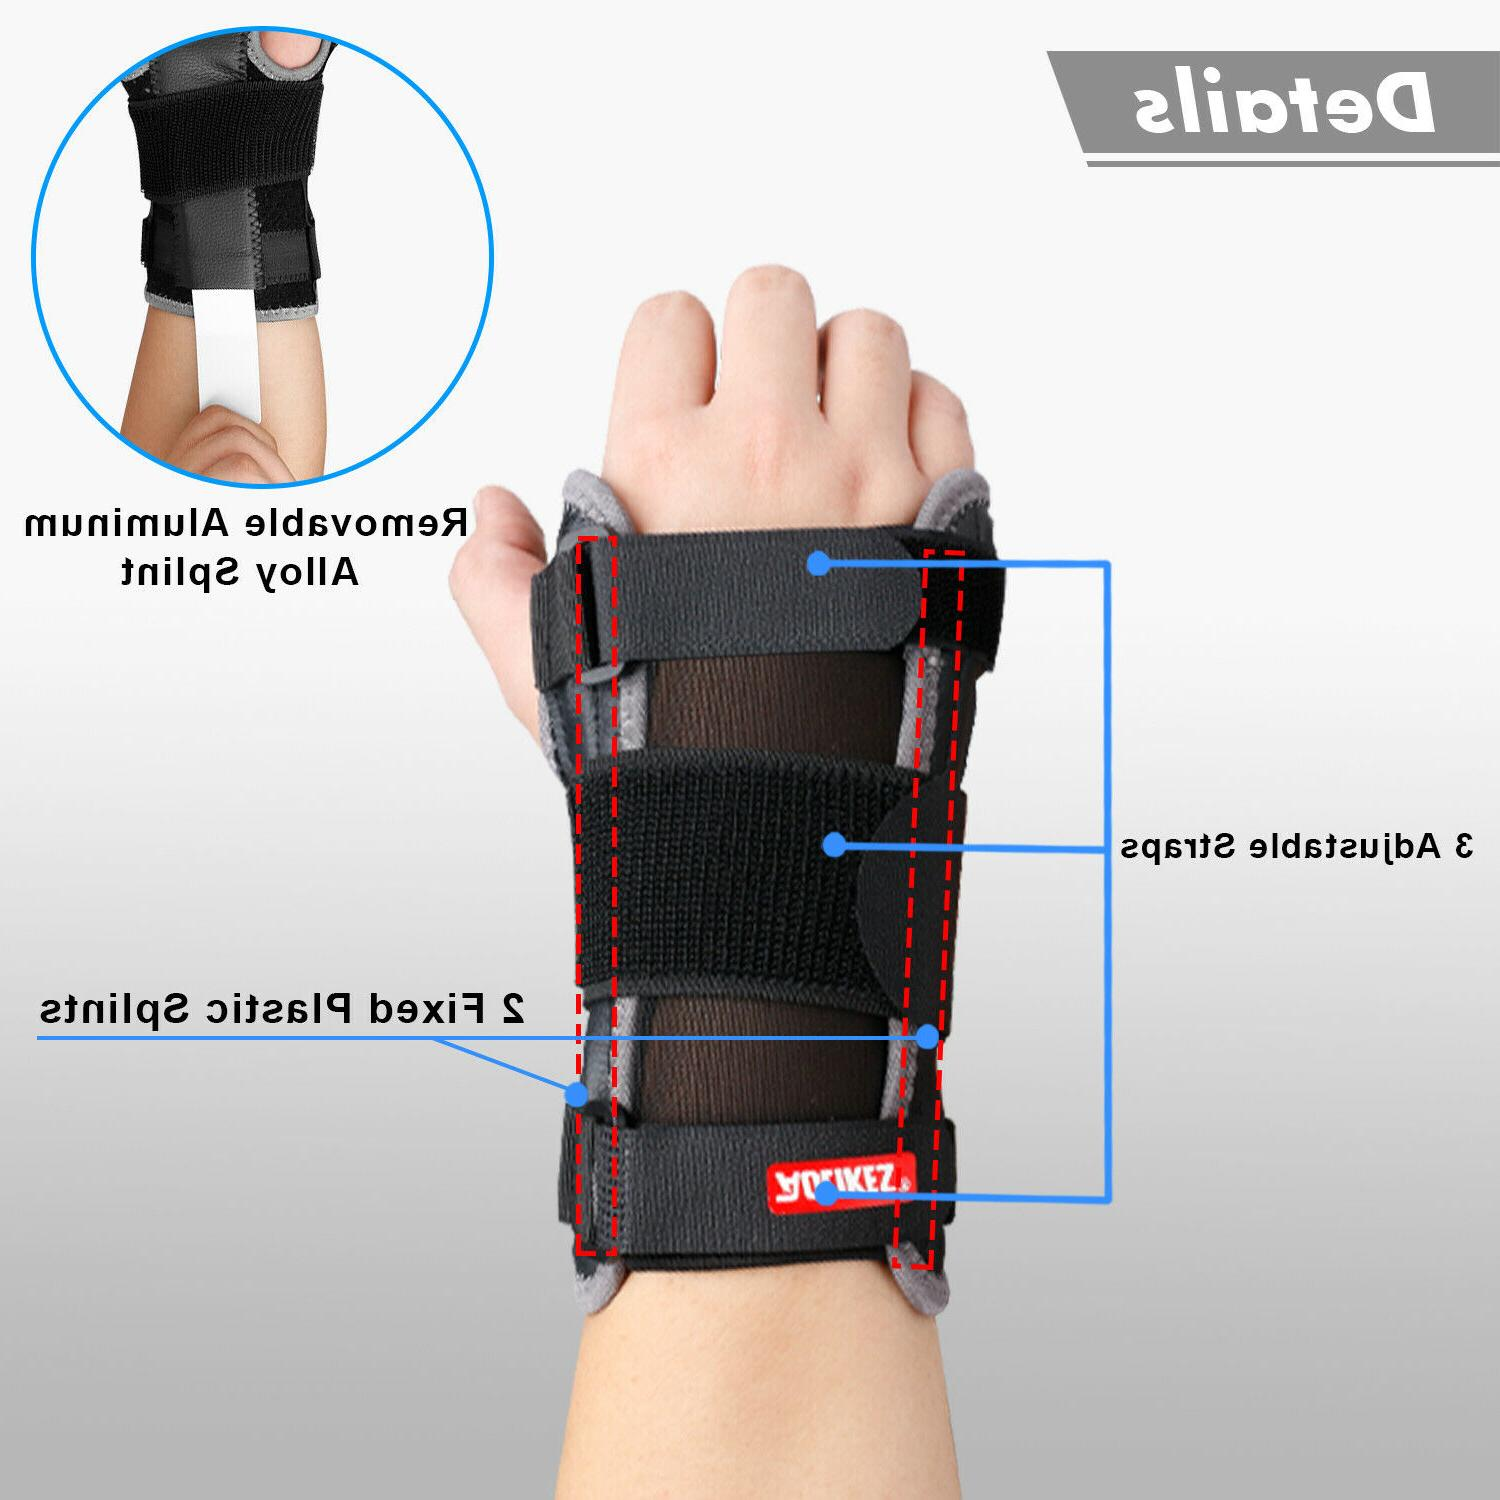 Wrist Support Carpal Tunnel Splint Gloves